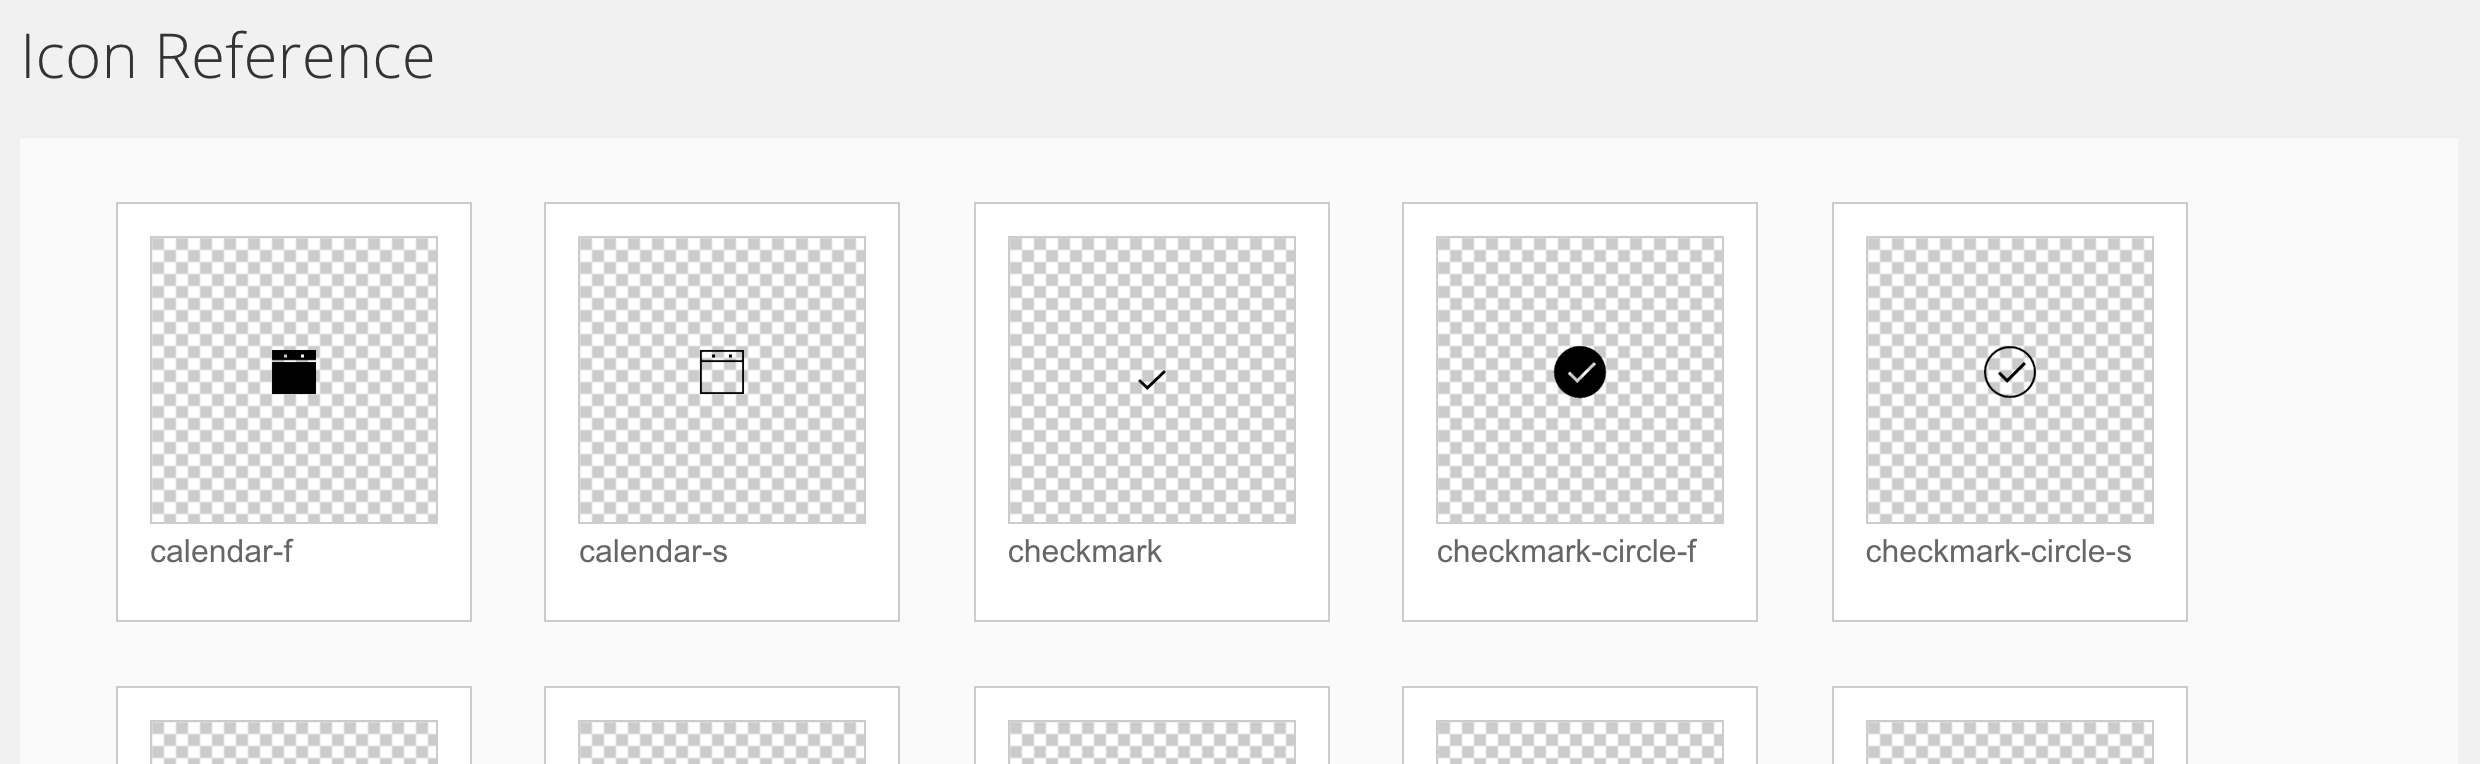 Can you use both internal and external SVG sprites in icon